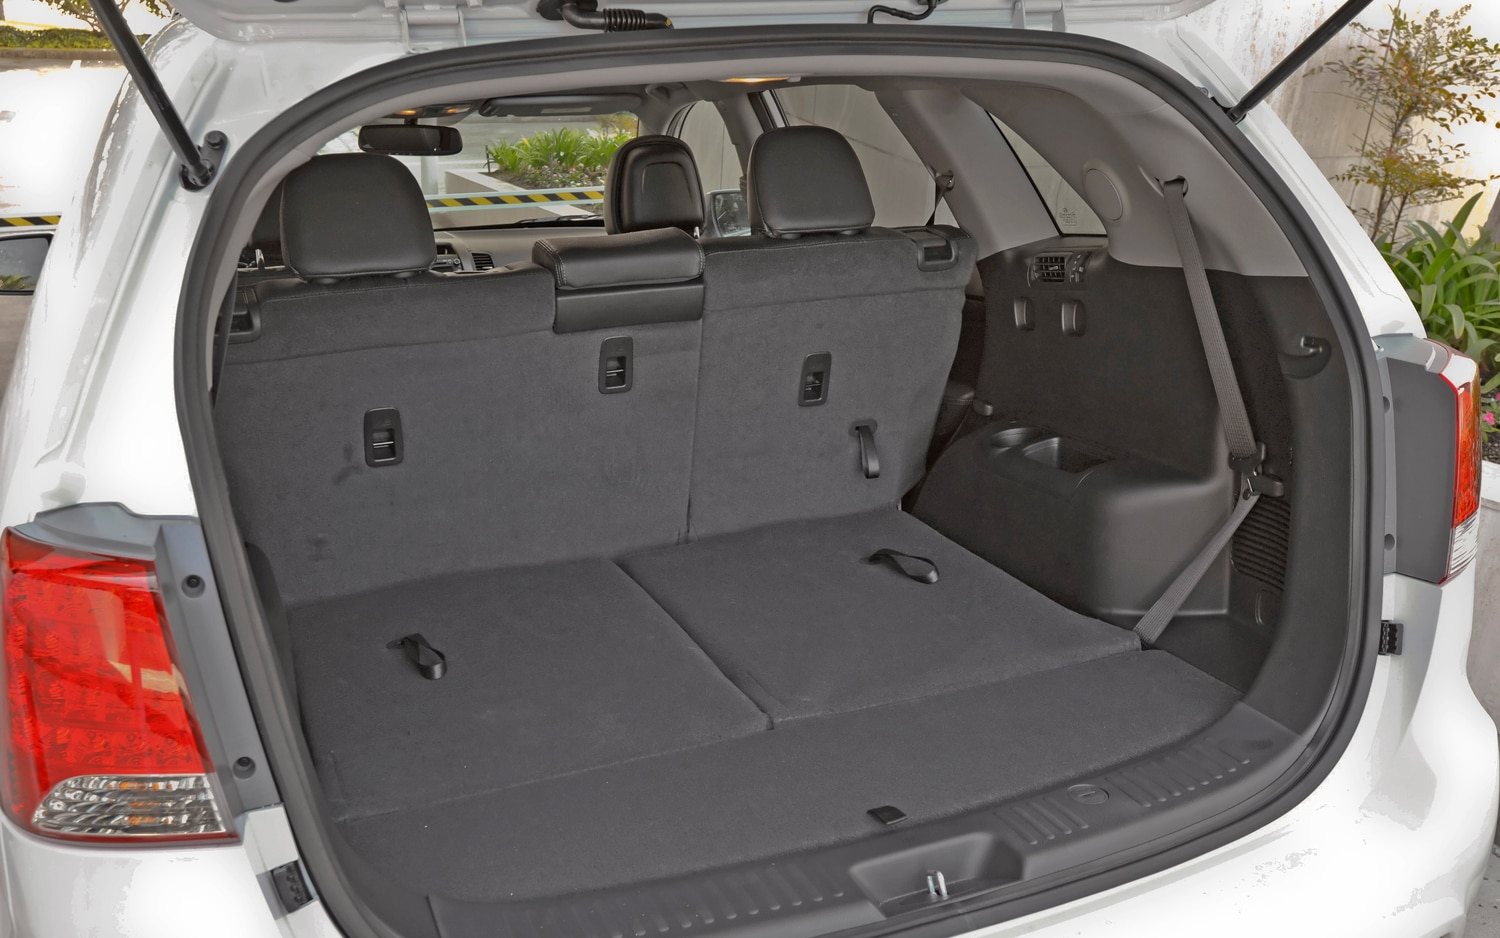 2012 Kia Sorento Trunk Space